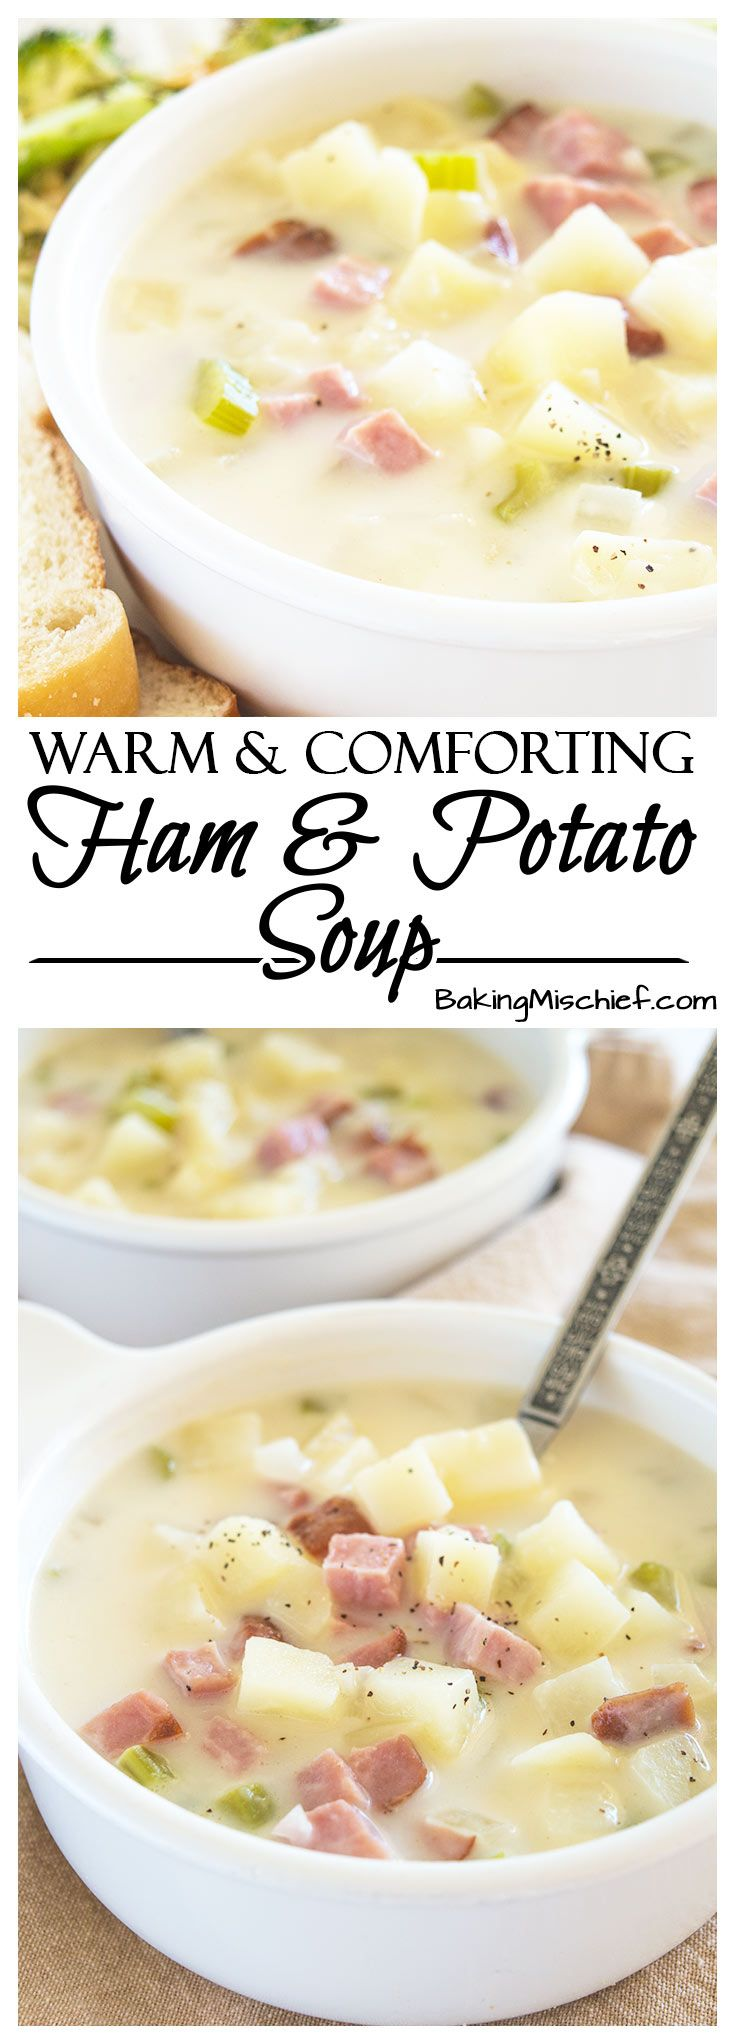 Easy and Comforting Ham and Potato Soup - Pure comfort food in a bowl. Easy, fast, and low-calorie, this is one of my favorite busy weeknight meals. Recipe includes nutritional information and make-ahead instructions. From BakingMischief.com